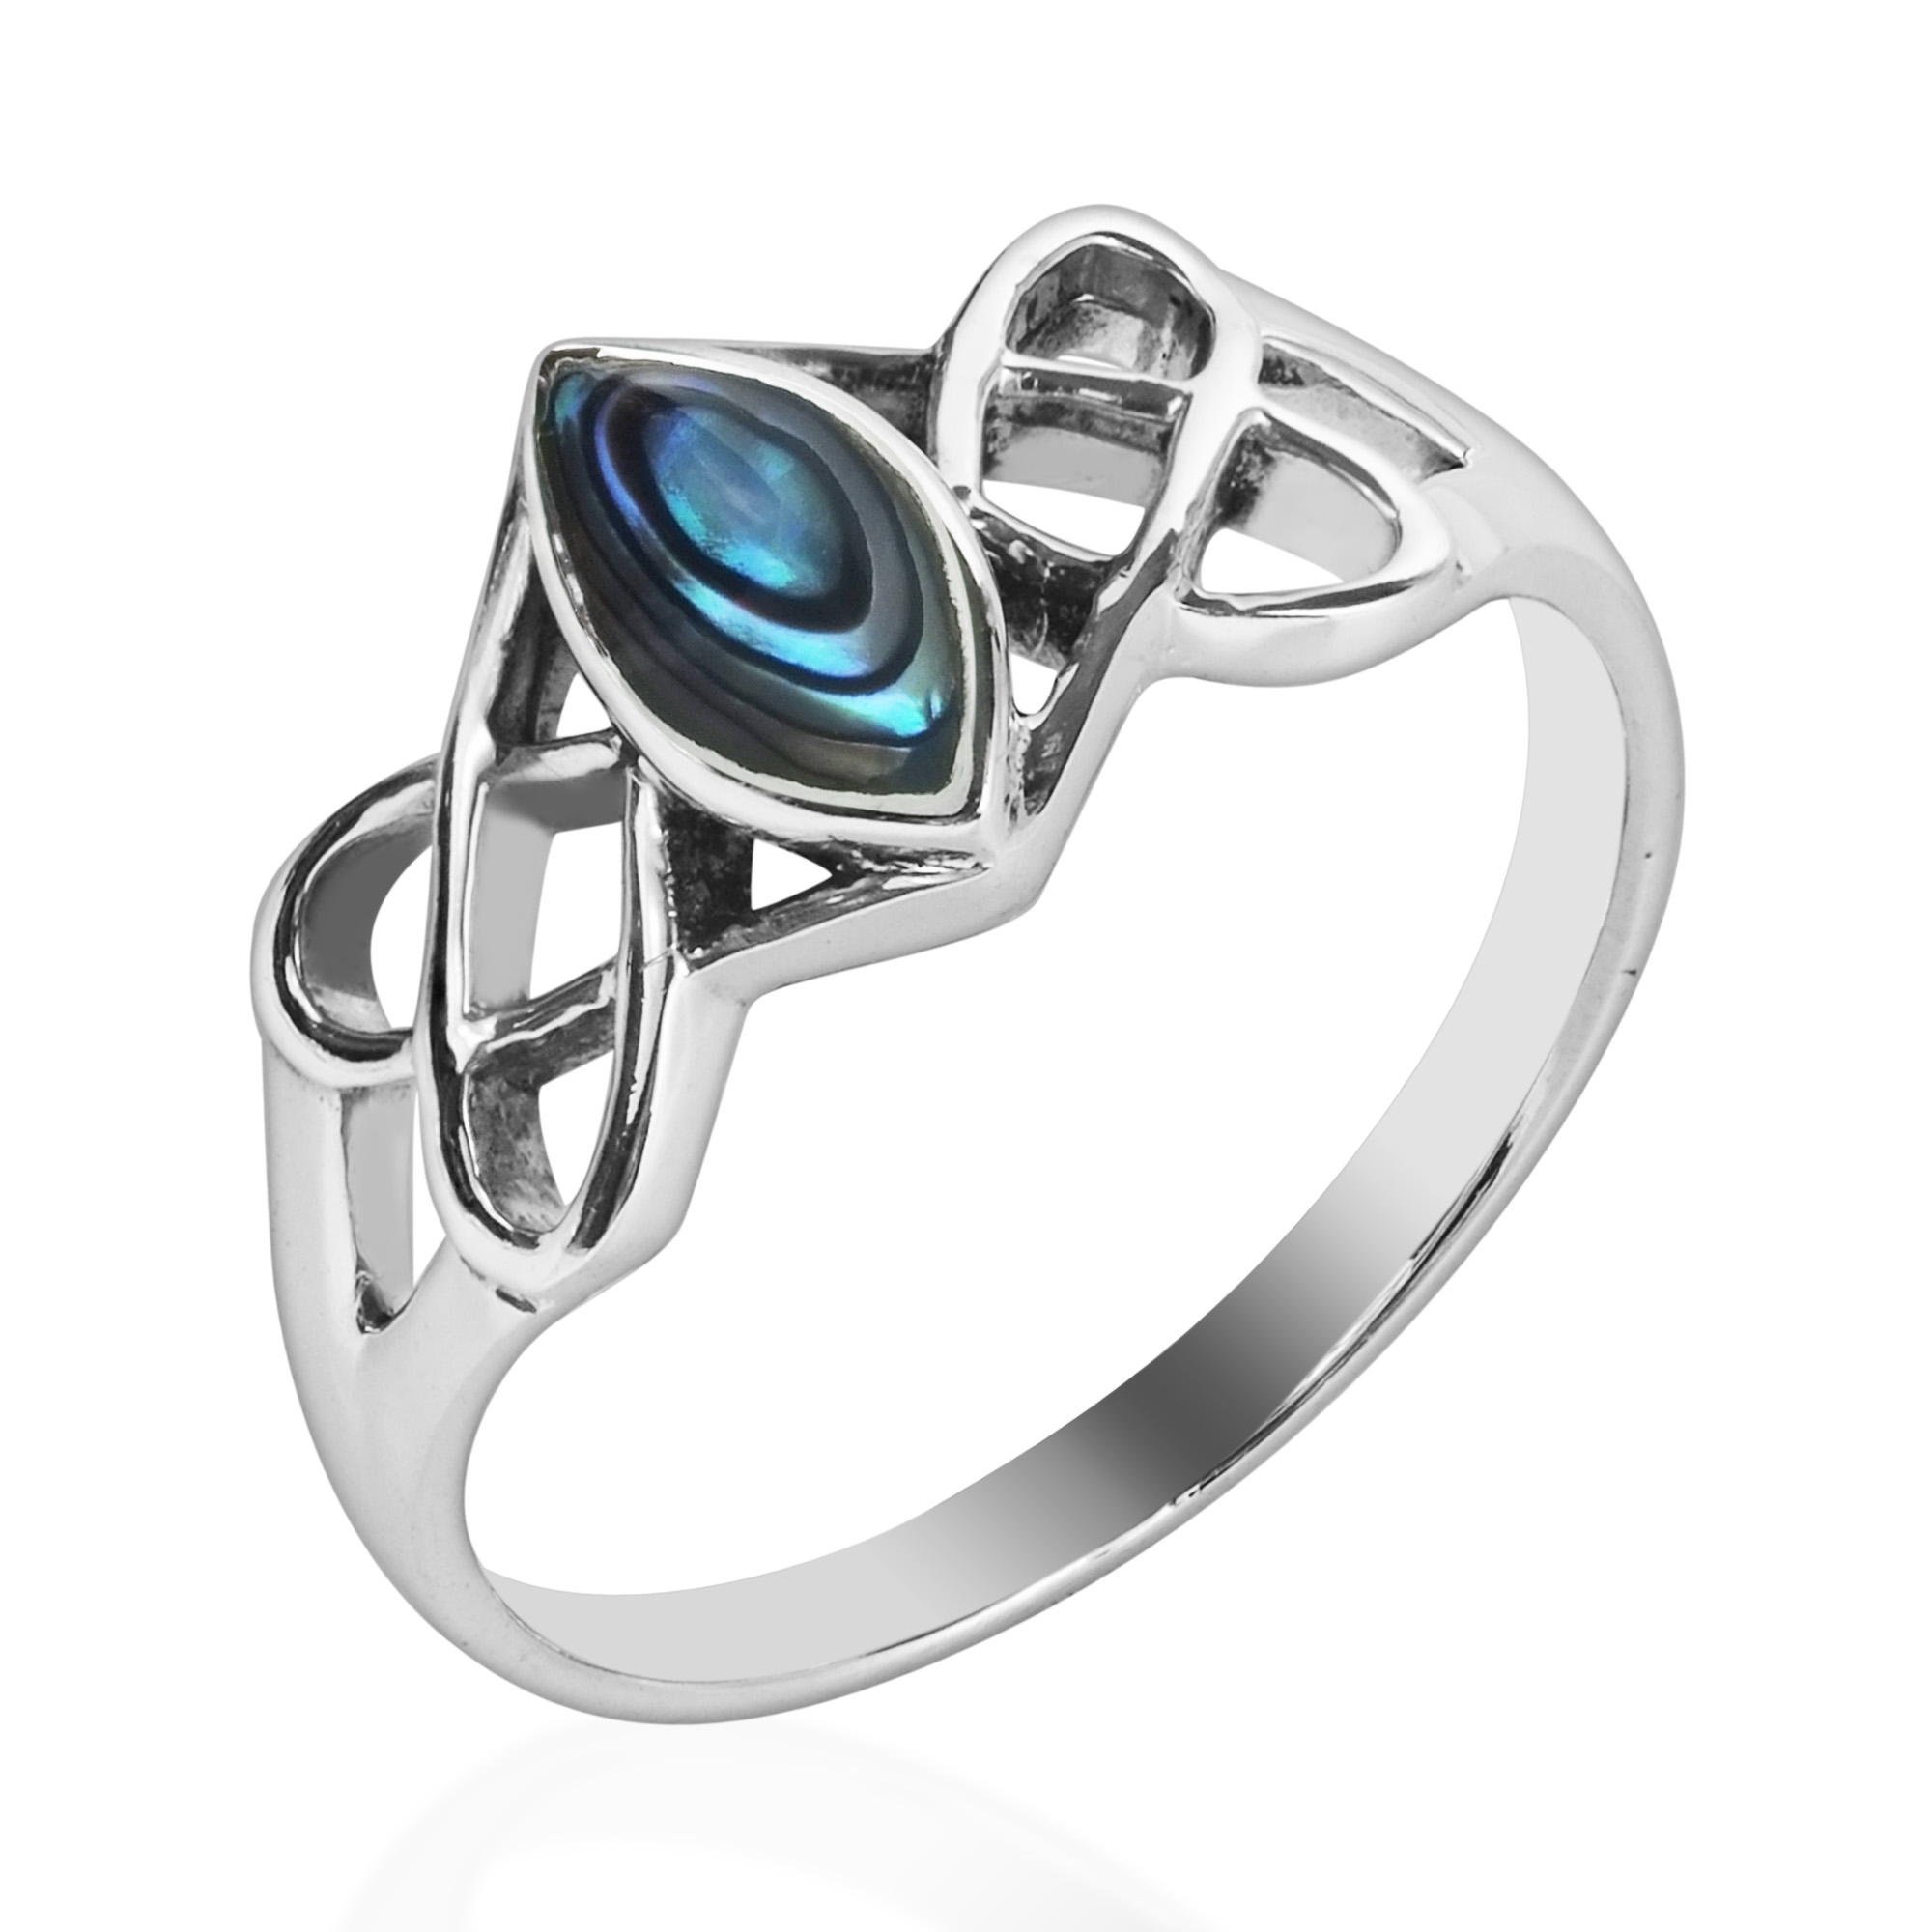 oval in beautiful charm rings natural ornate design of center an abalone the feminine aba heart aeravida stone elegant a ring for products cute this details nestled swirls silver sterling sr filigree